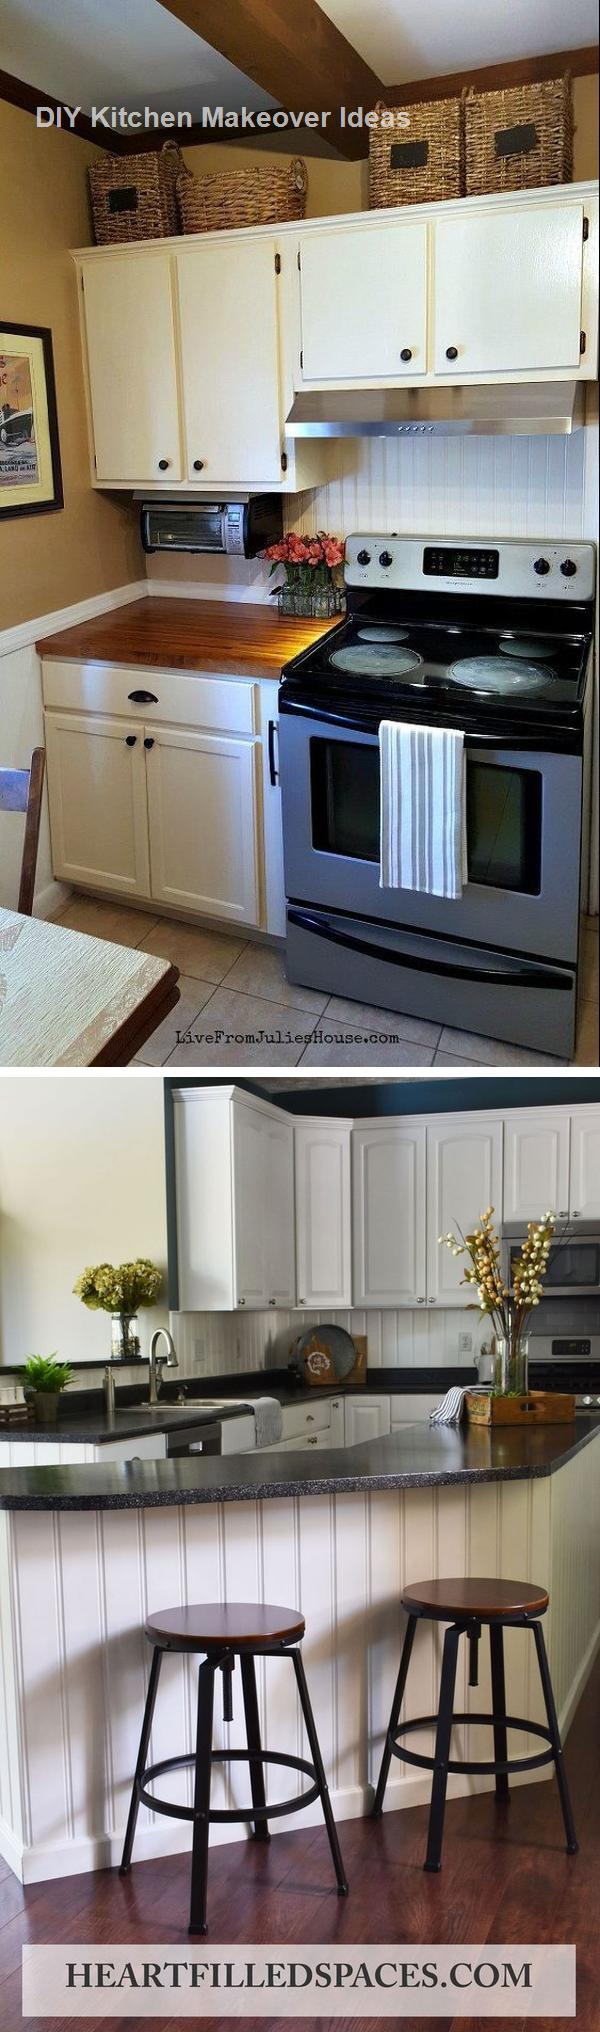 16 Awesome Ideas for Kitchen Makeovers #Kitchenmakeover # ...